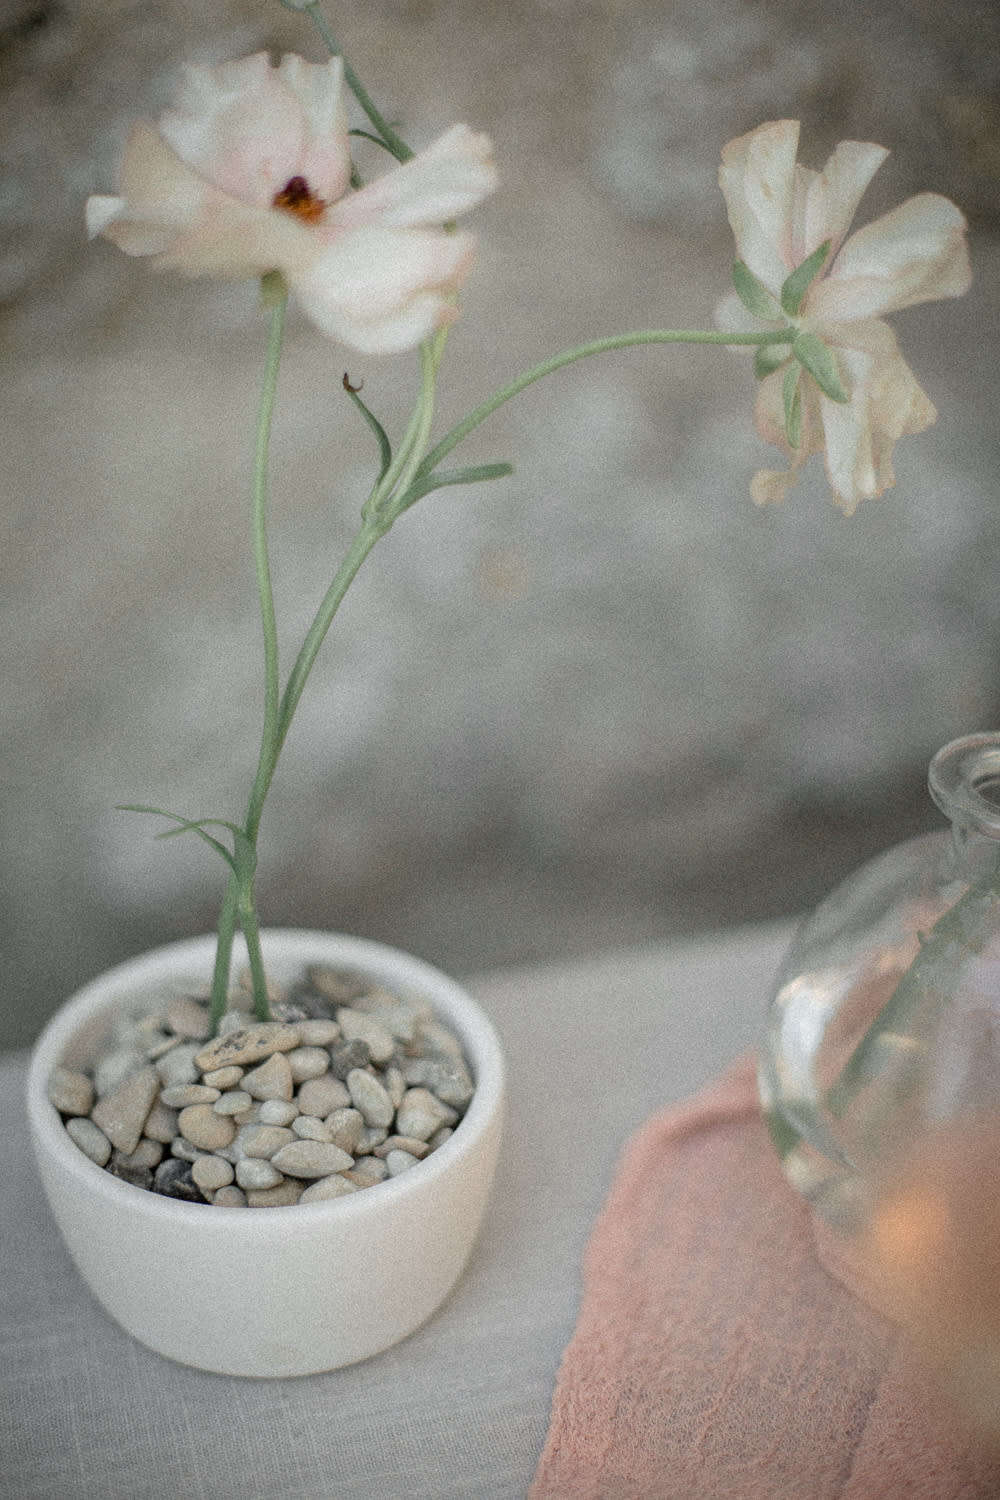 Less is more: an arrangement with only two stems, plus small stones in the base.